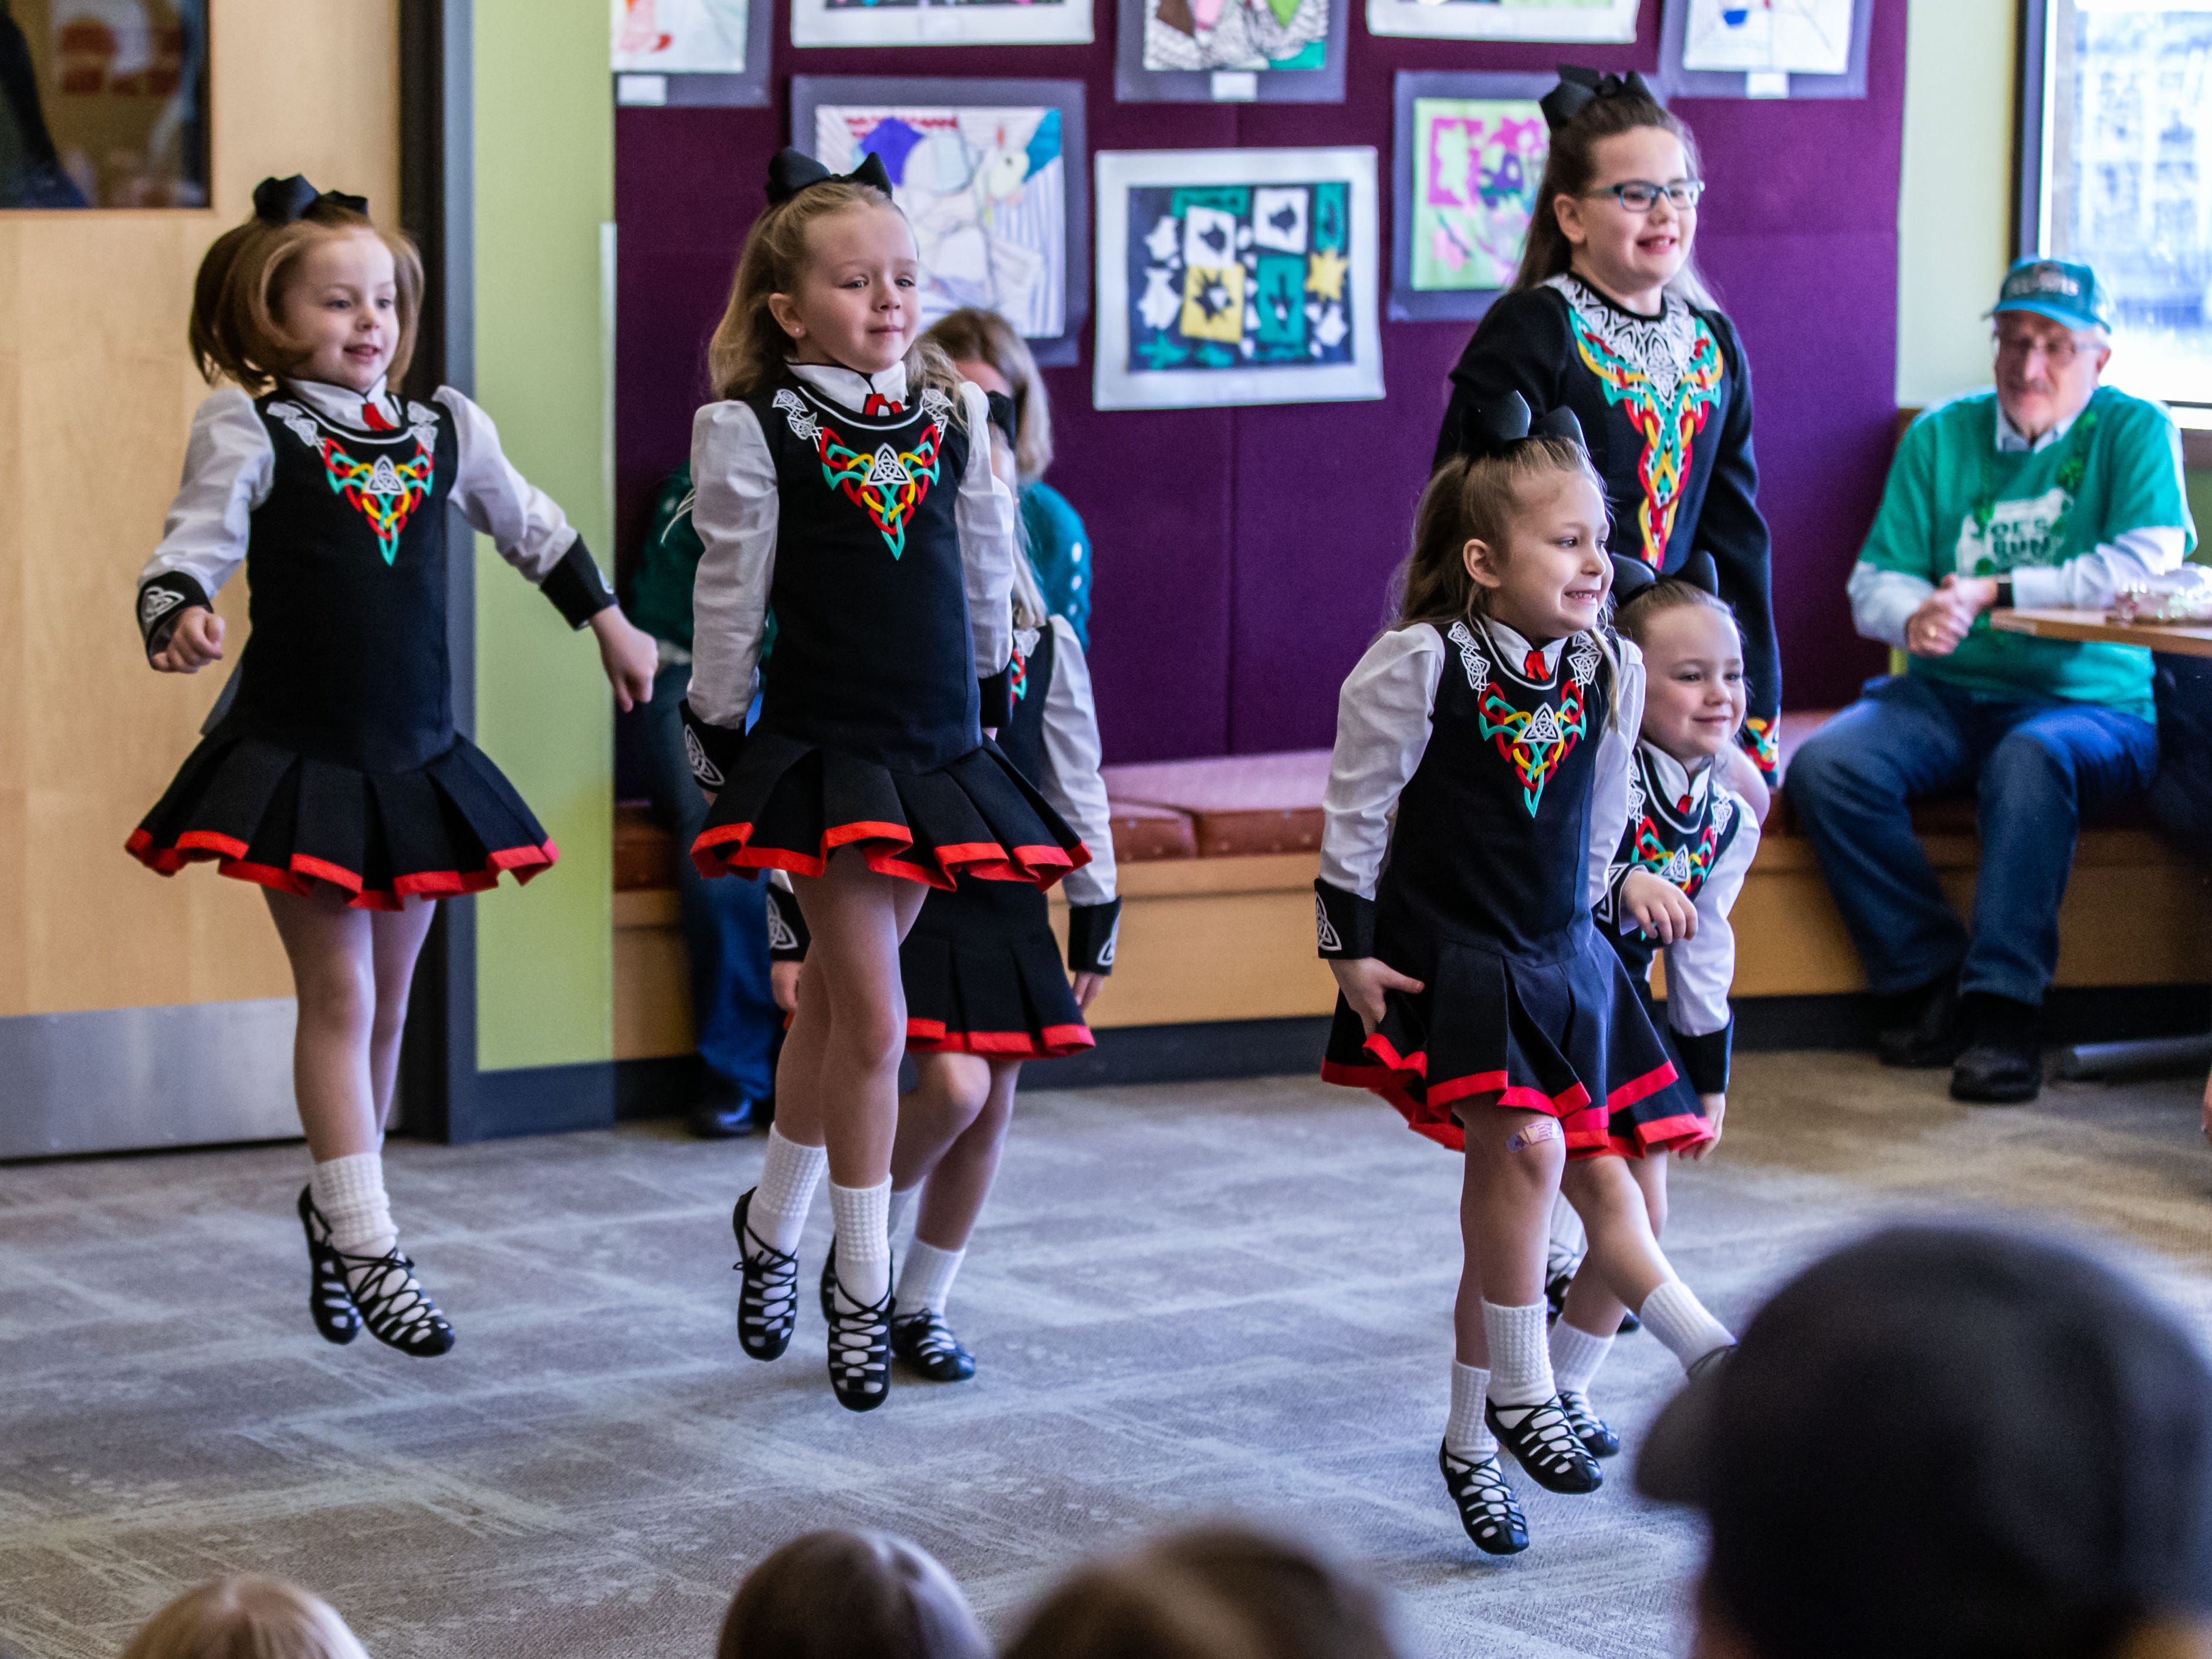 Dancers from the Trinity Academy of Irish Dance perform for visitors at the Waukesha Public Library on Saturday, March 16, 2019.